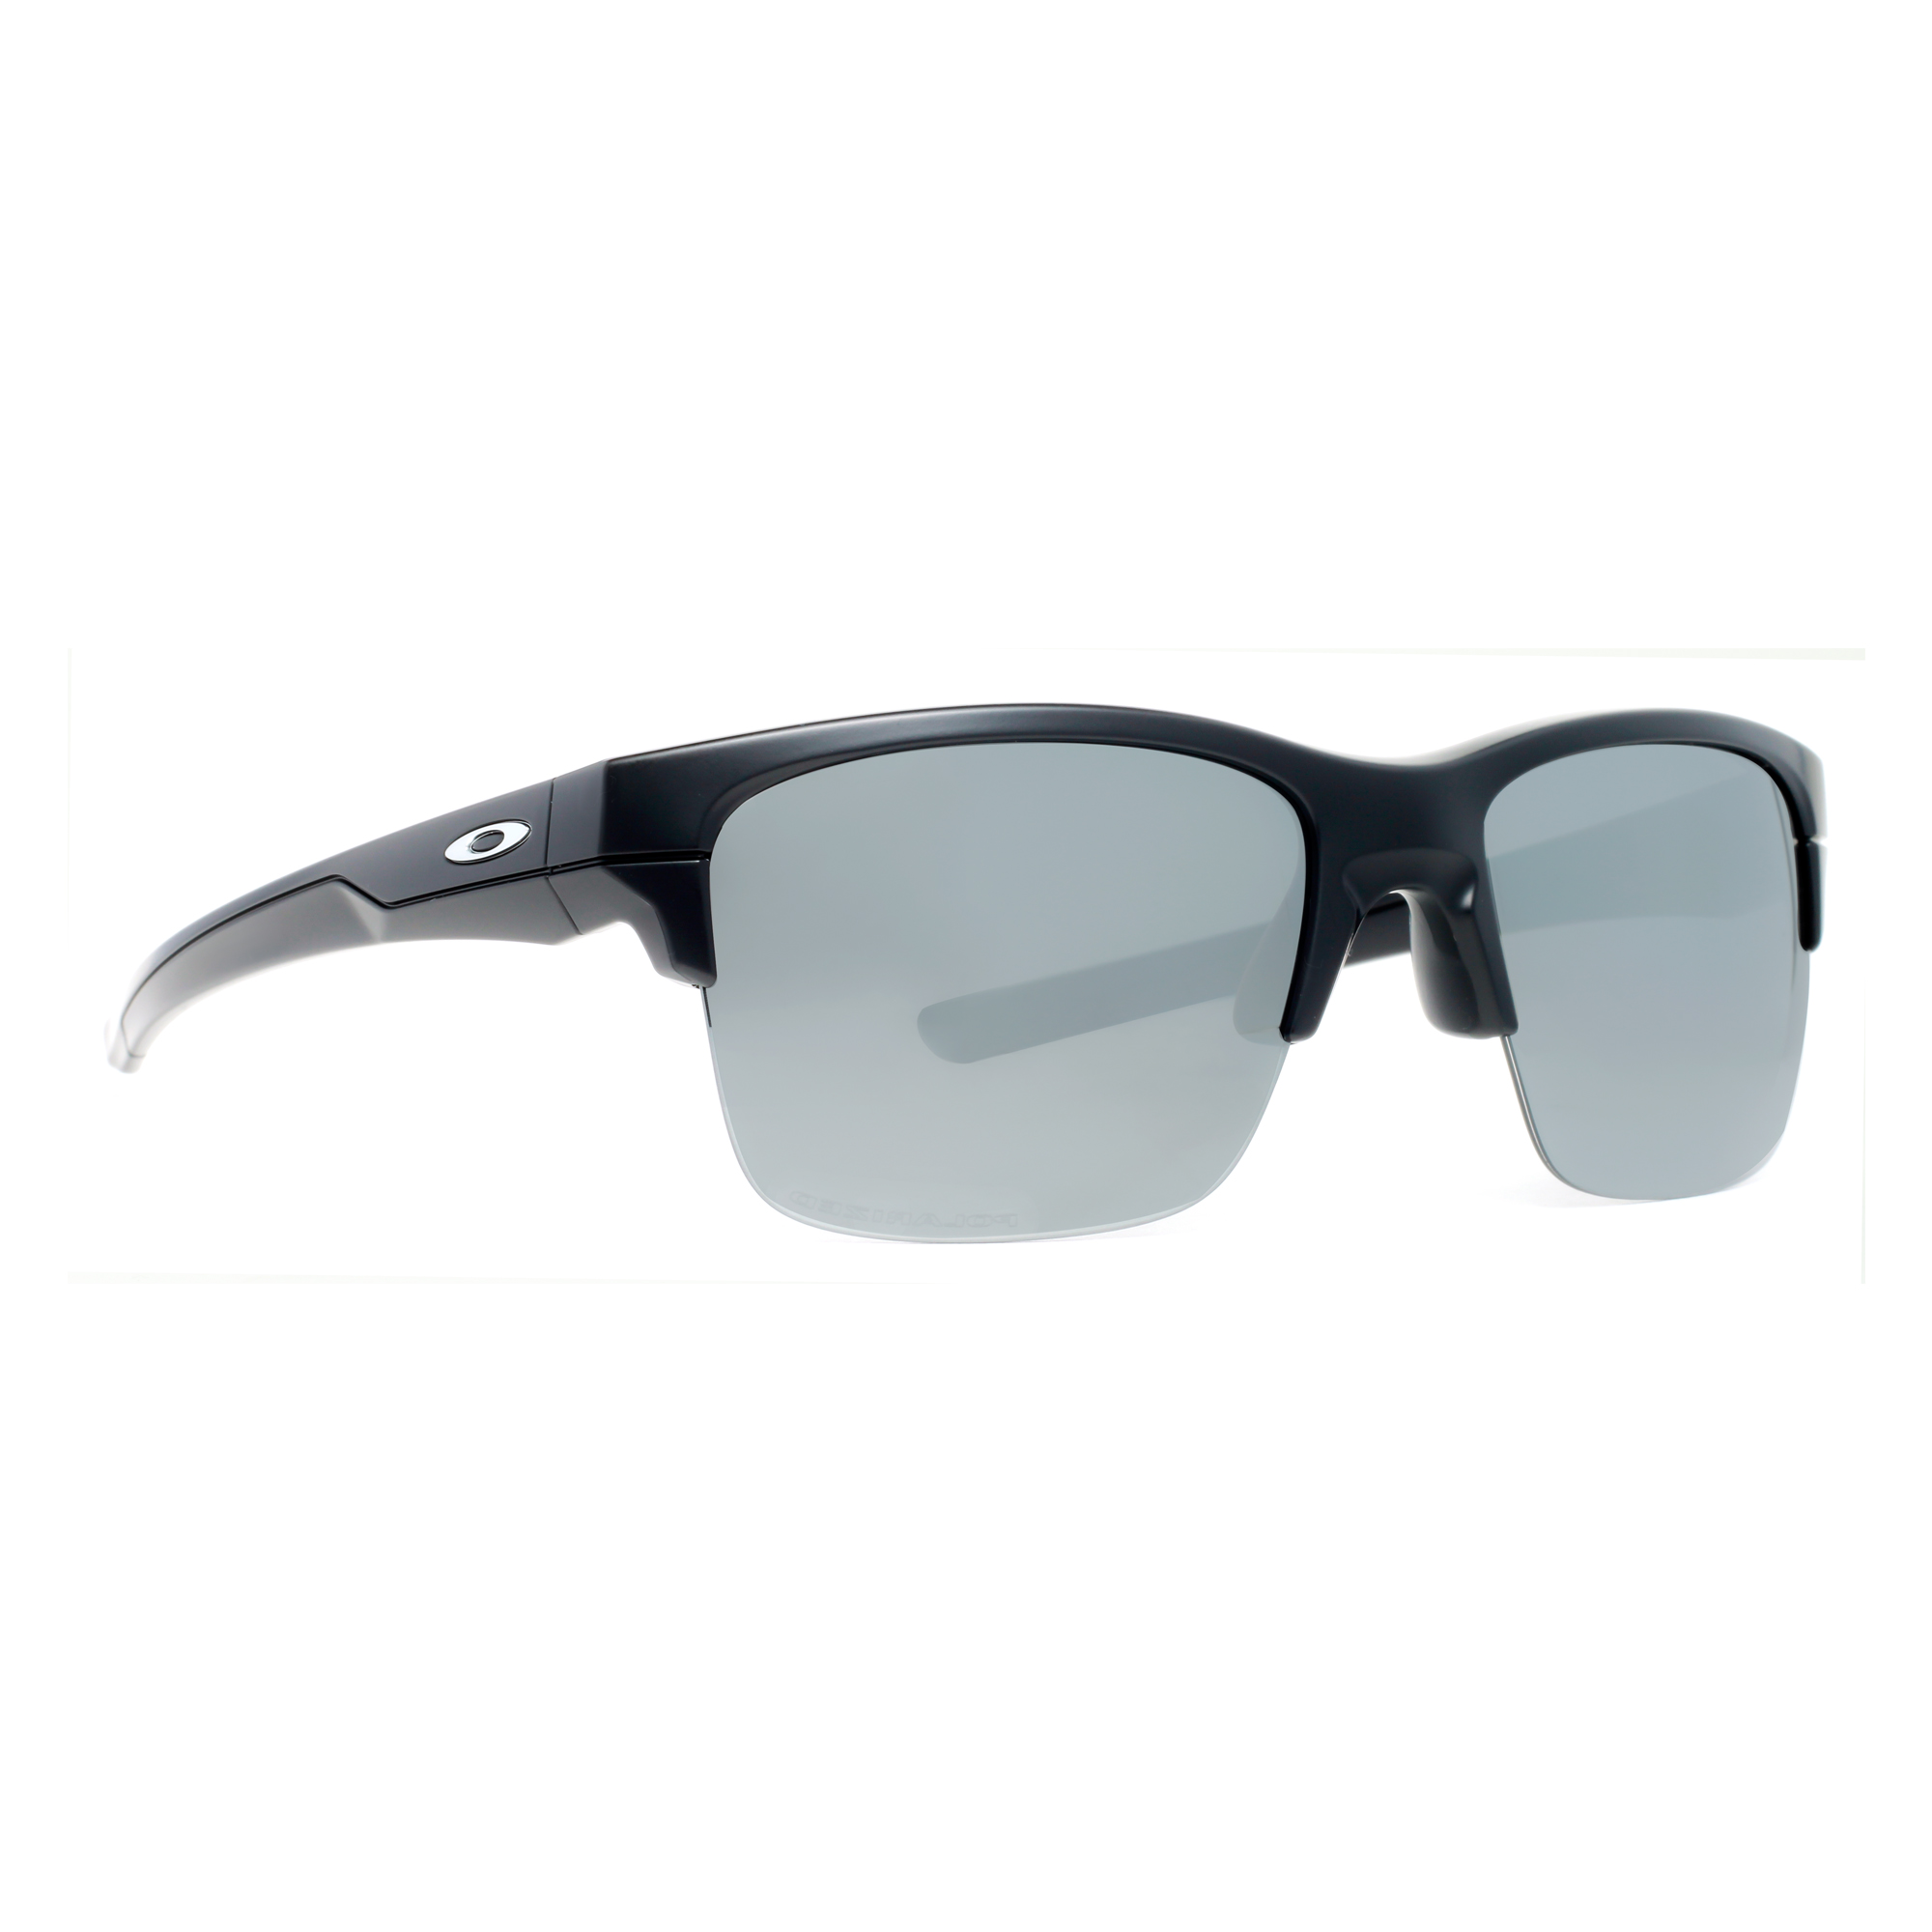 6483ae21b16 Oakley Men s Batwolf Polarized Sunglasses - Matte Black